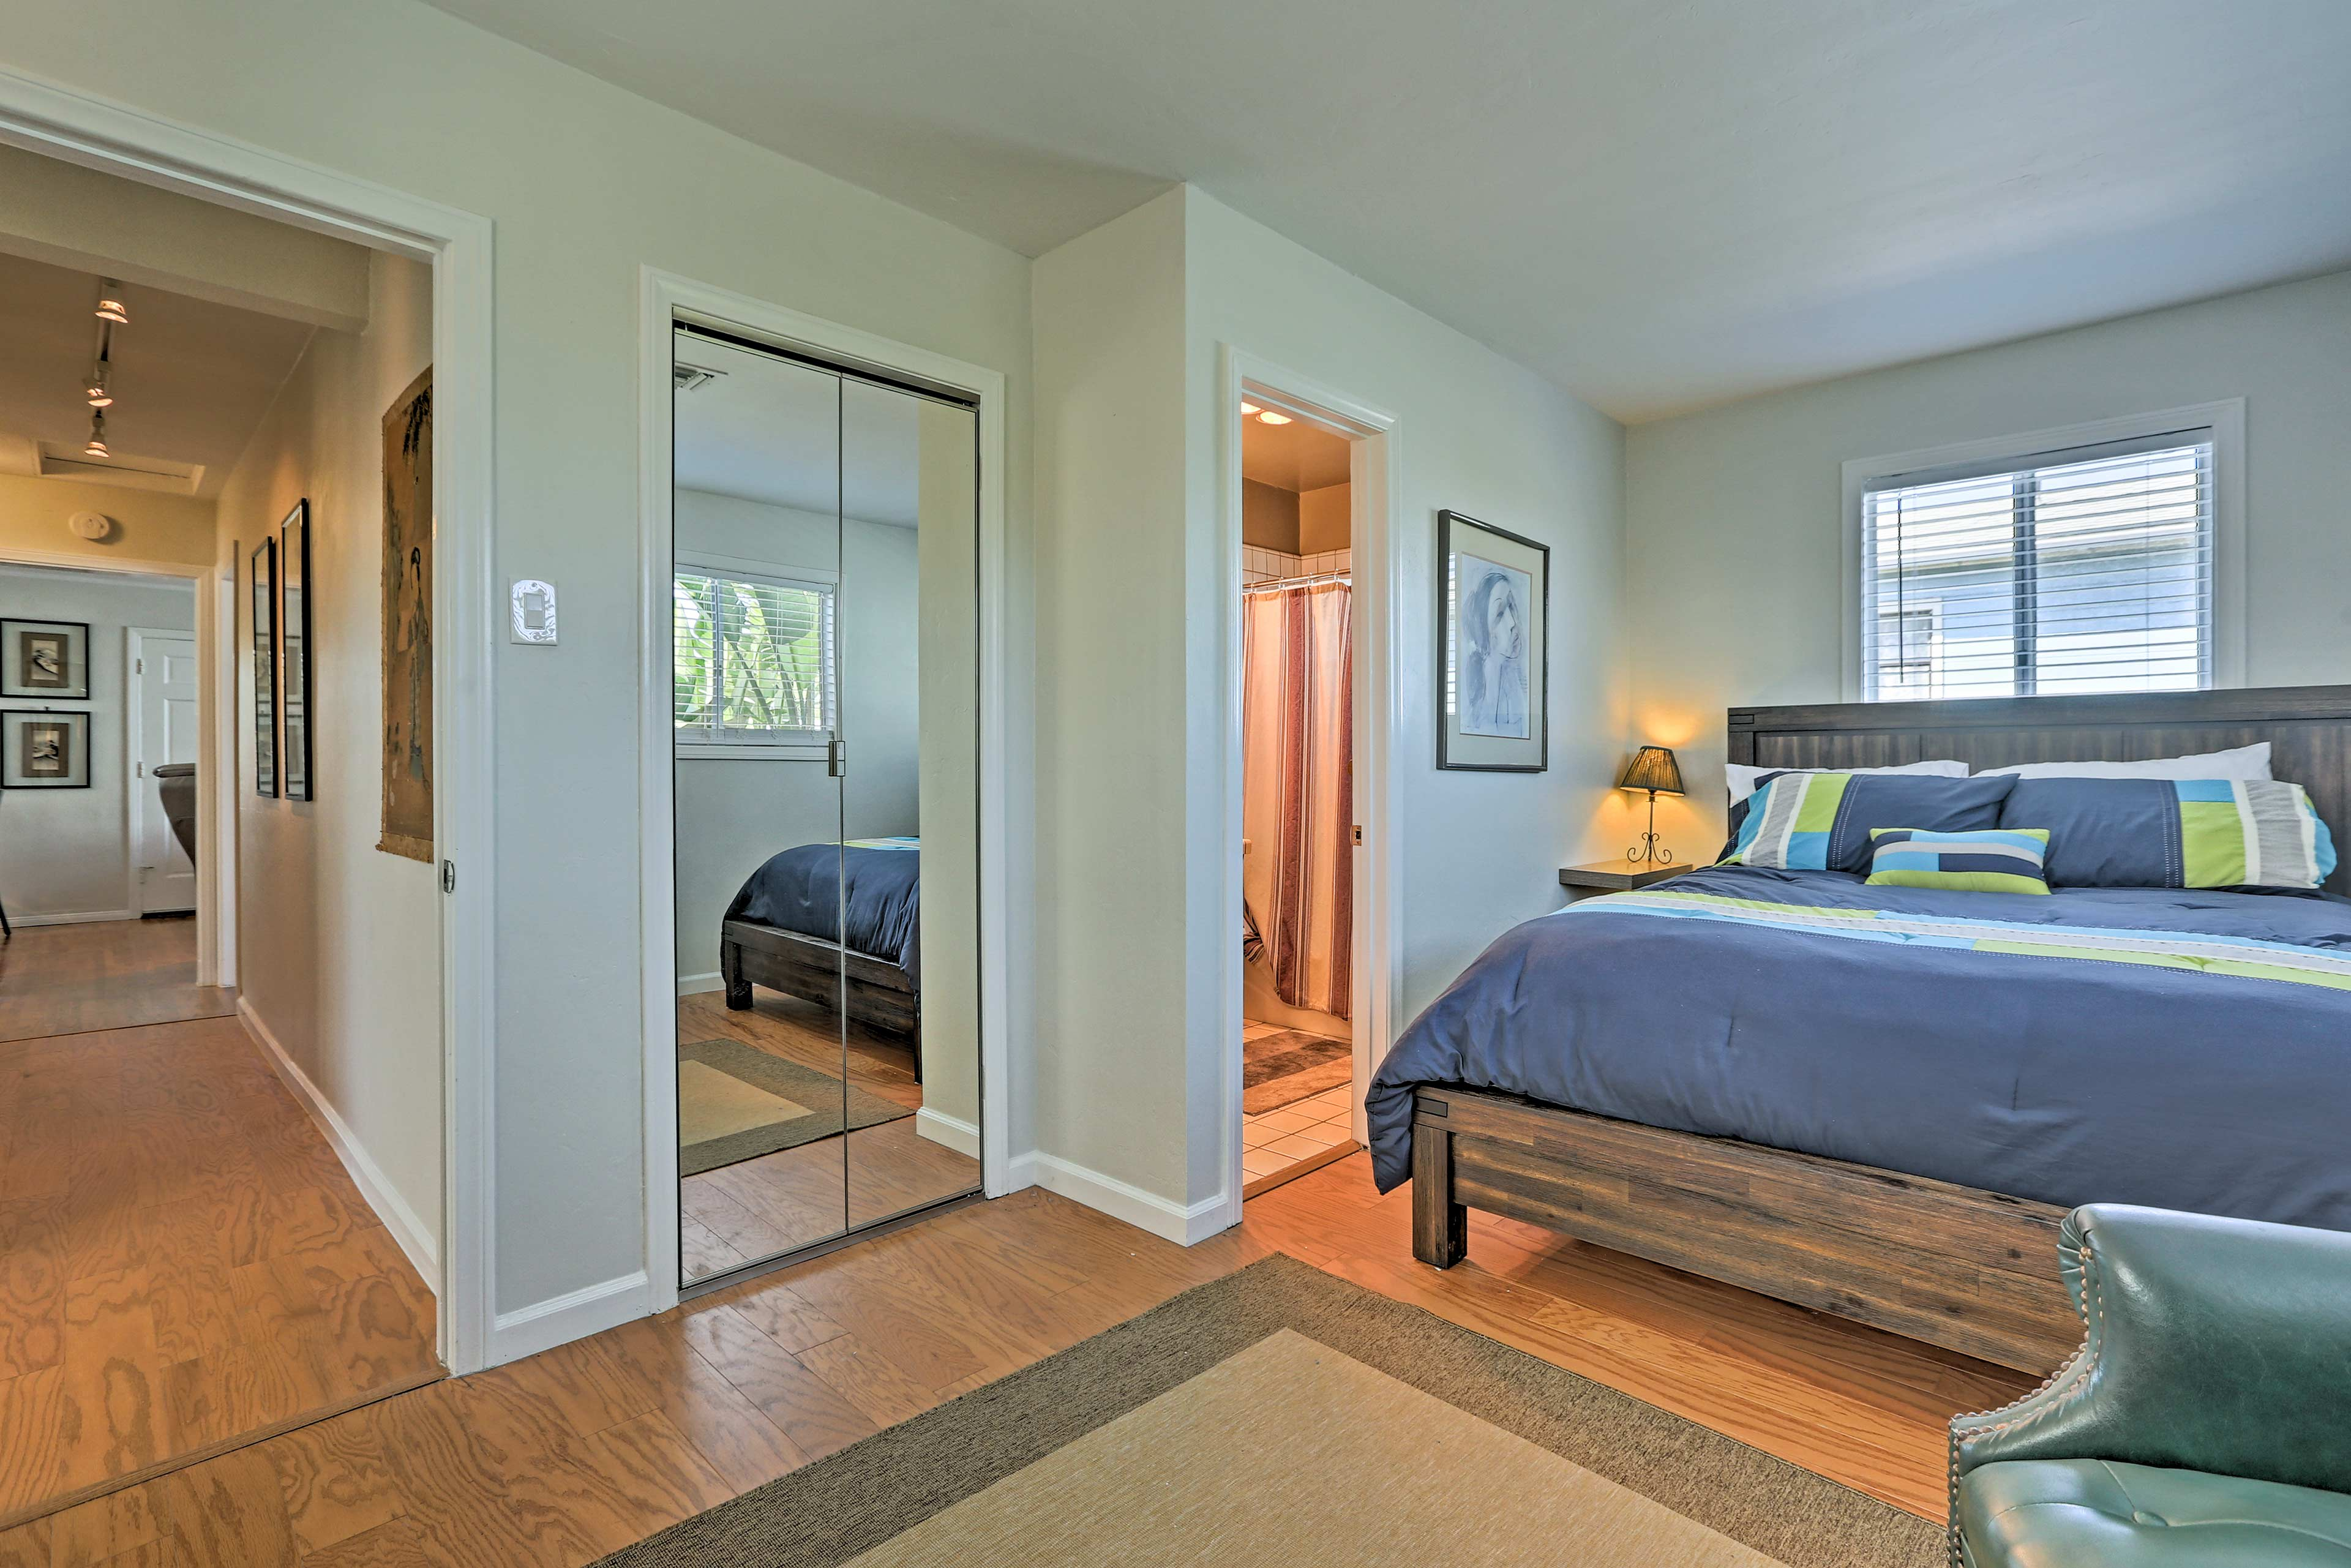 The master bedroom features a cozy queen bed and flat-screen Smart/cable TV.